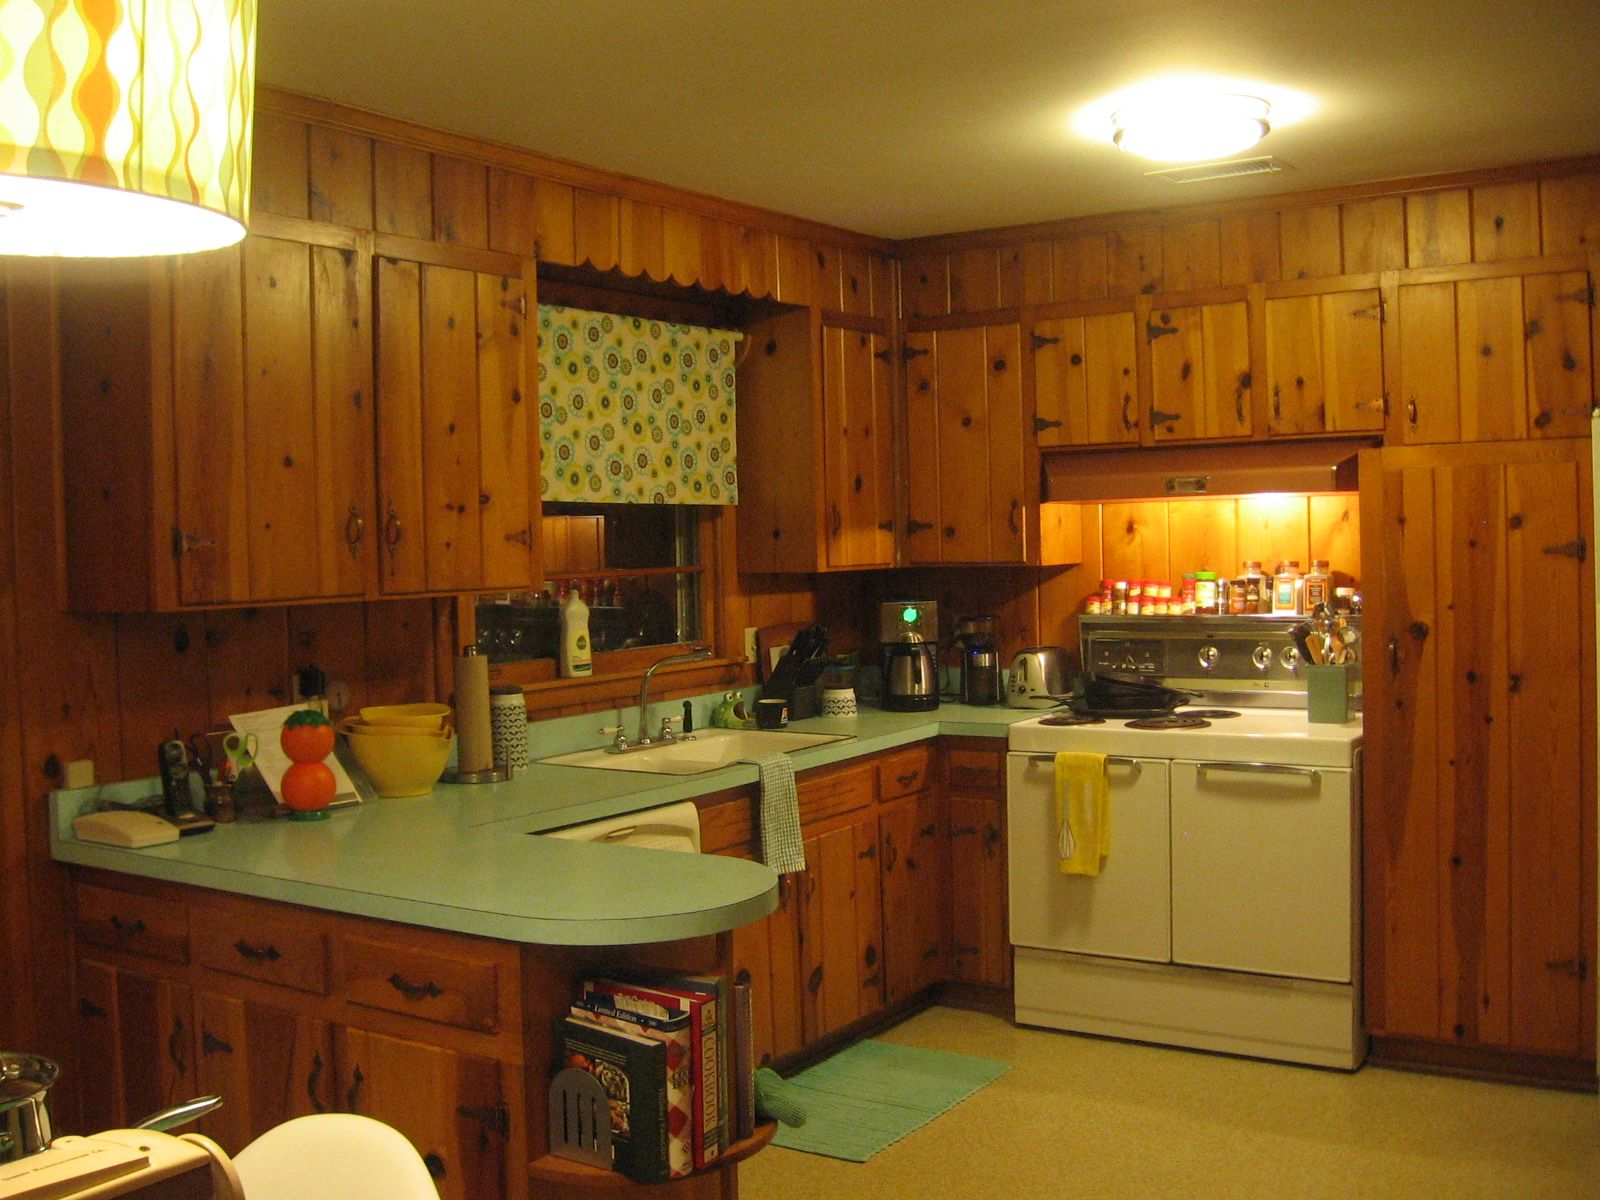 Knotty Pine Love Upload Photos Of Your Knotty Pine Rooms Knotty Pine Kitchen Pine Kitchen Pine Kitchen Cabinets